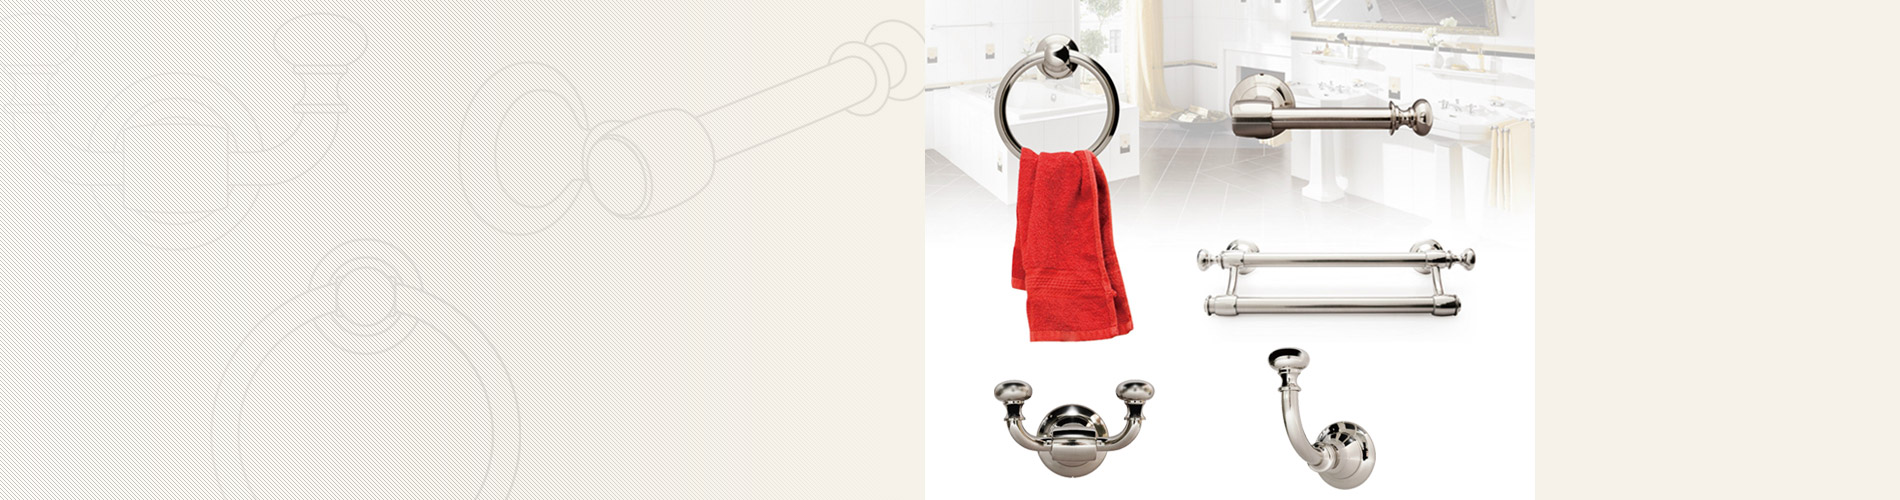 Bathroom Hardware Our bathroom hardware contains single/double towel rack,  towel ring, tissue holder and garment hooks.